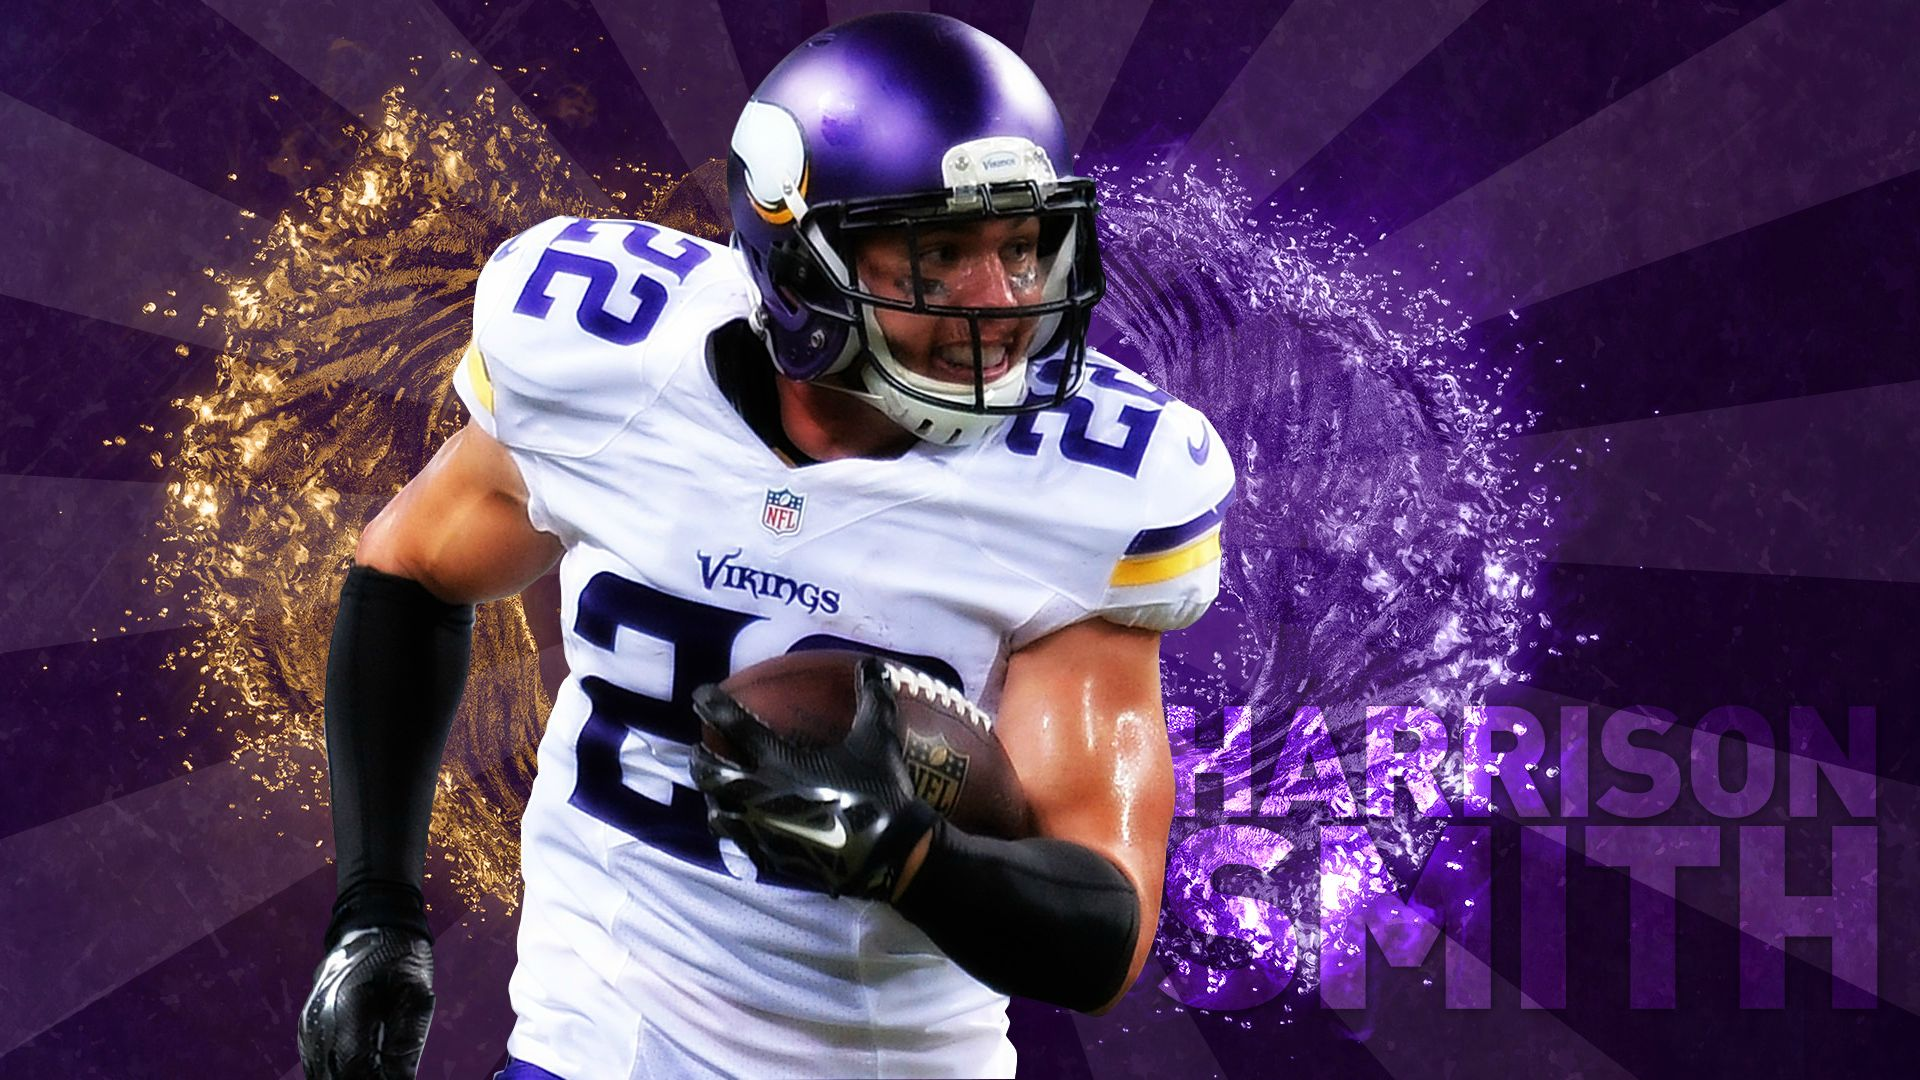 Anybody have any good Harrison smith wallpapers minnesotavikings 1920x1080